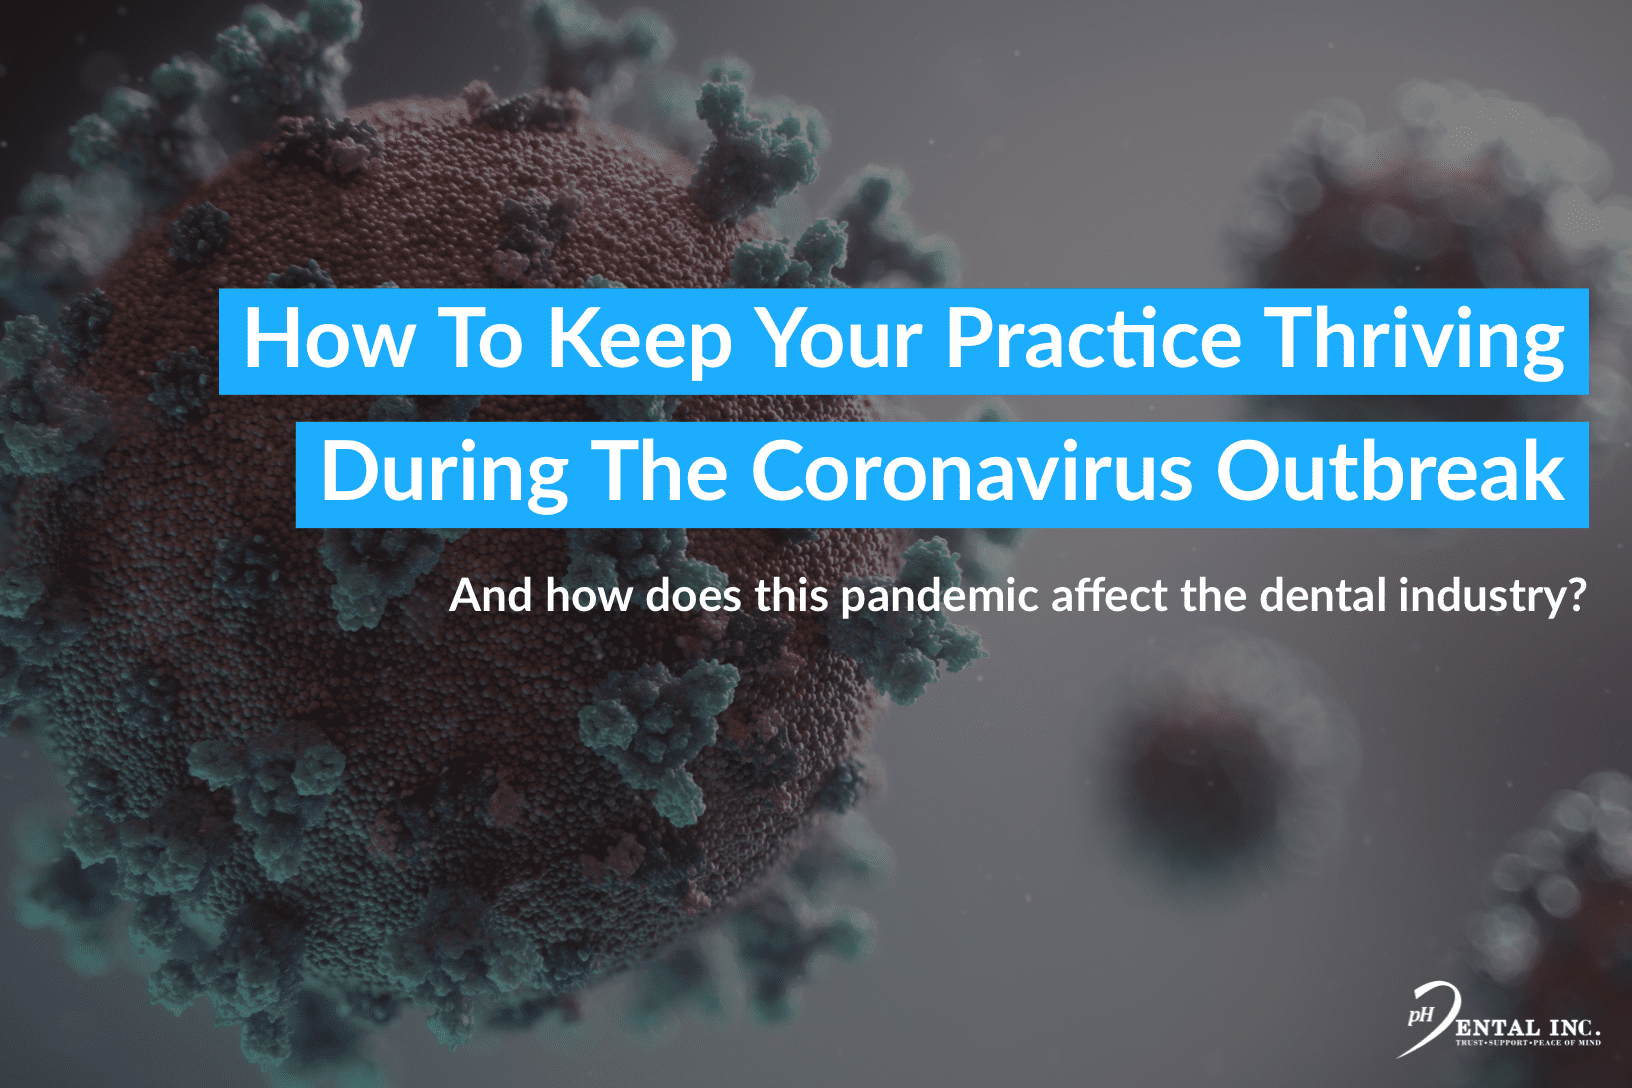 How to Keep Your Practice Thrive During the Coronavirus Outbreak